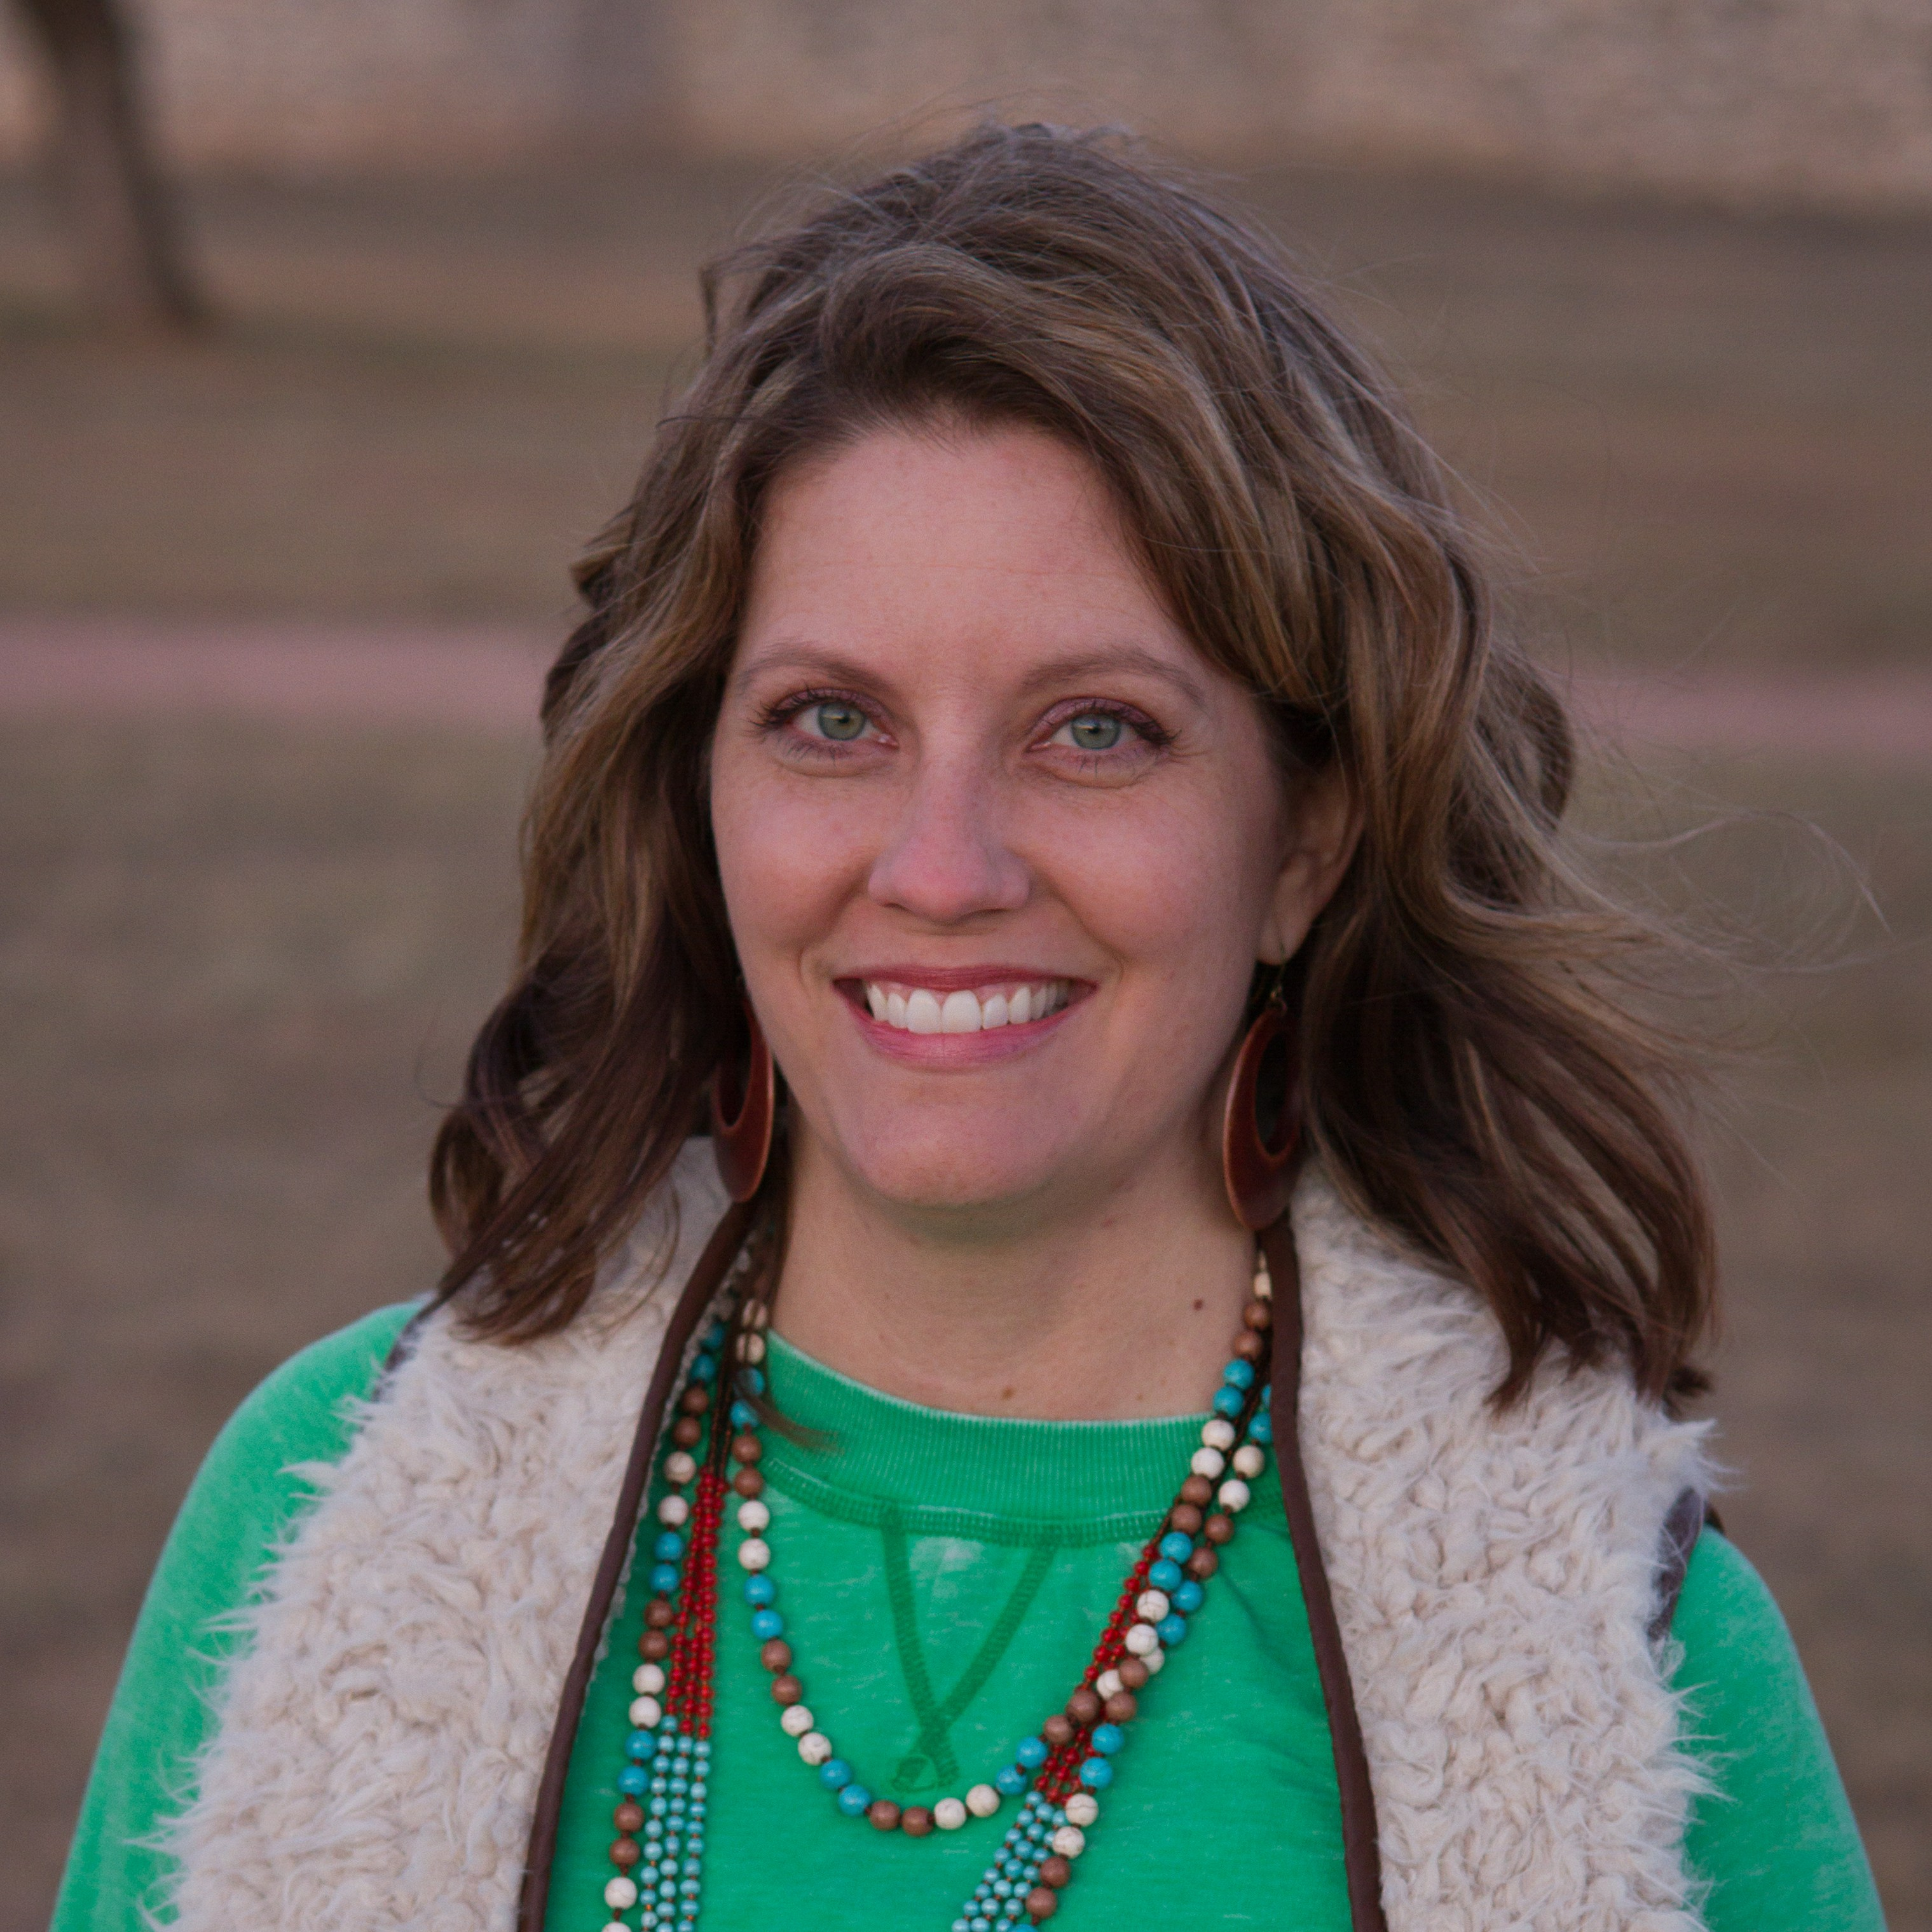 Head shot of Cristy Burch from Texas Parks and Wildlife